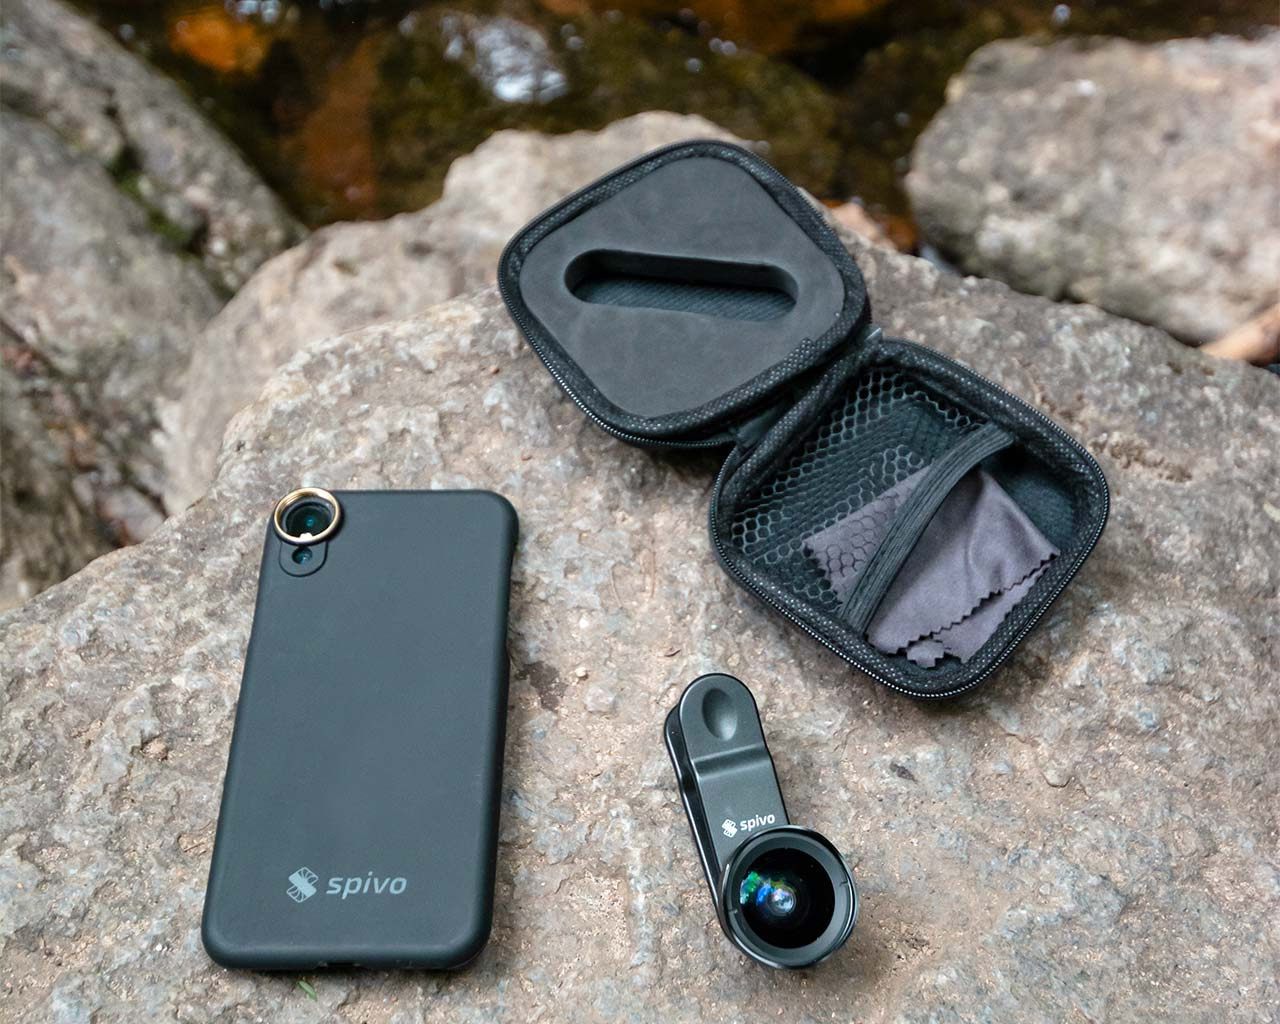 The Travel Lens comes with a universal phone clip, protective case, cleaning cloth and free iPhone case